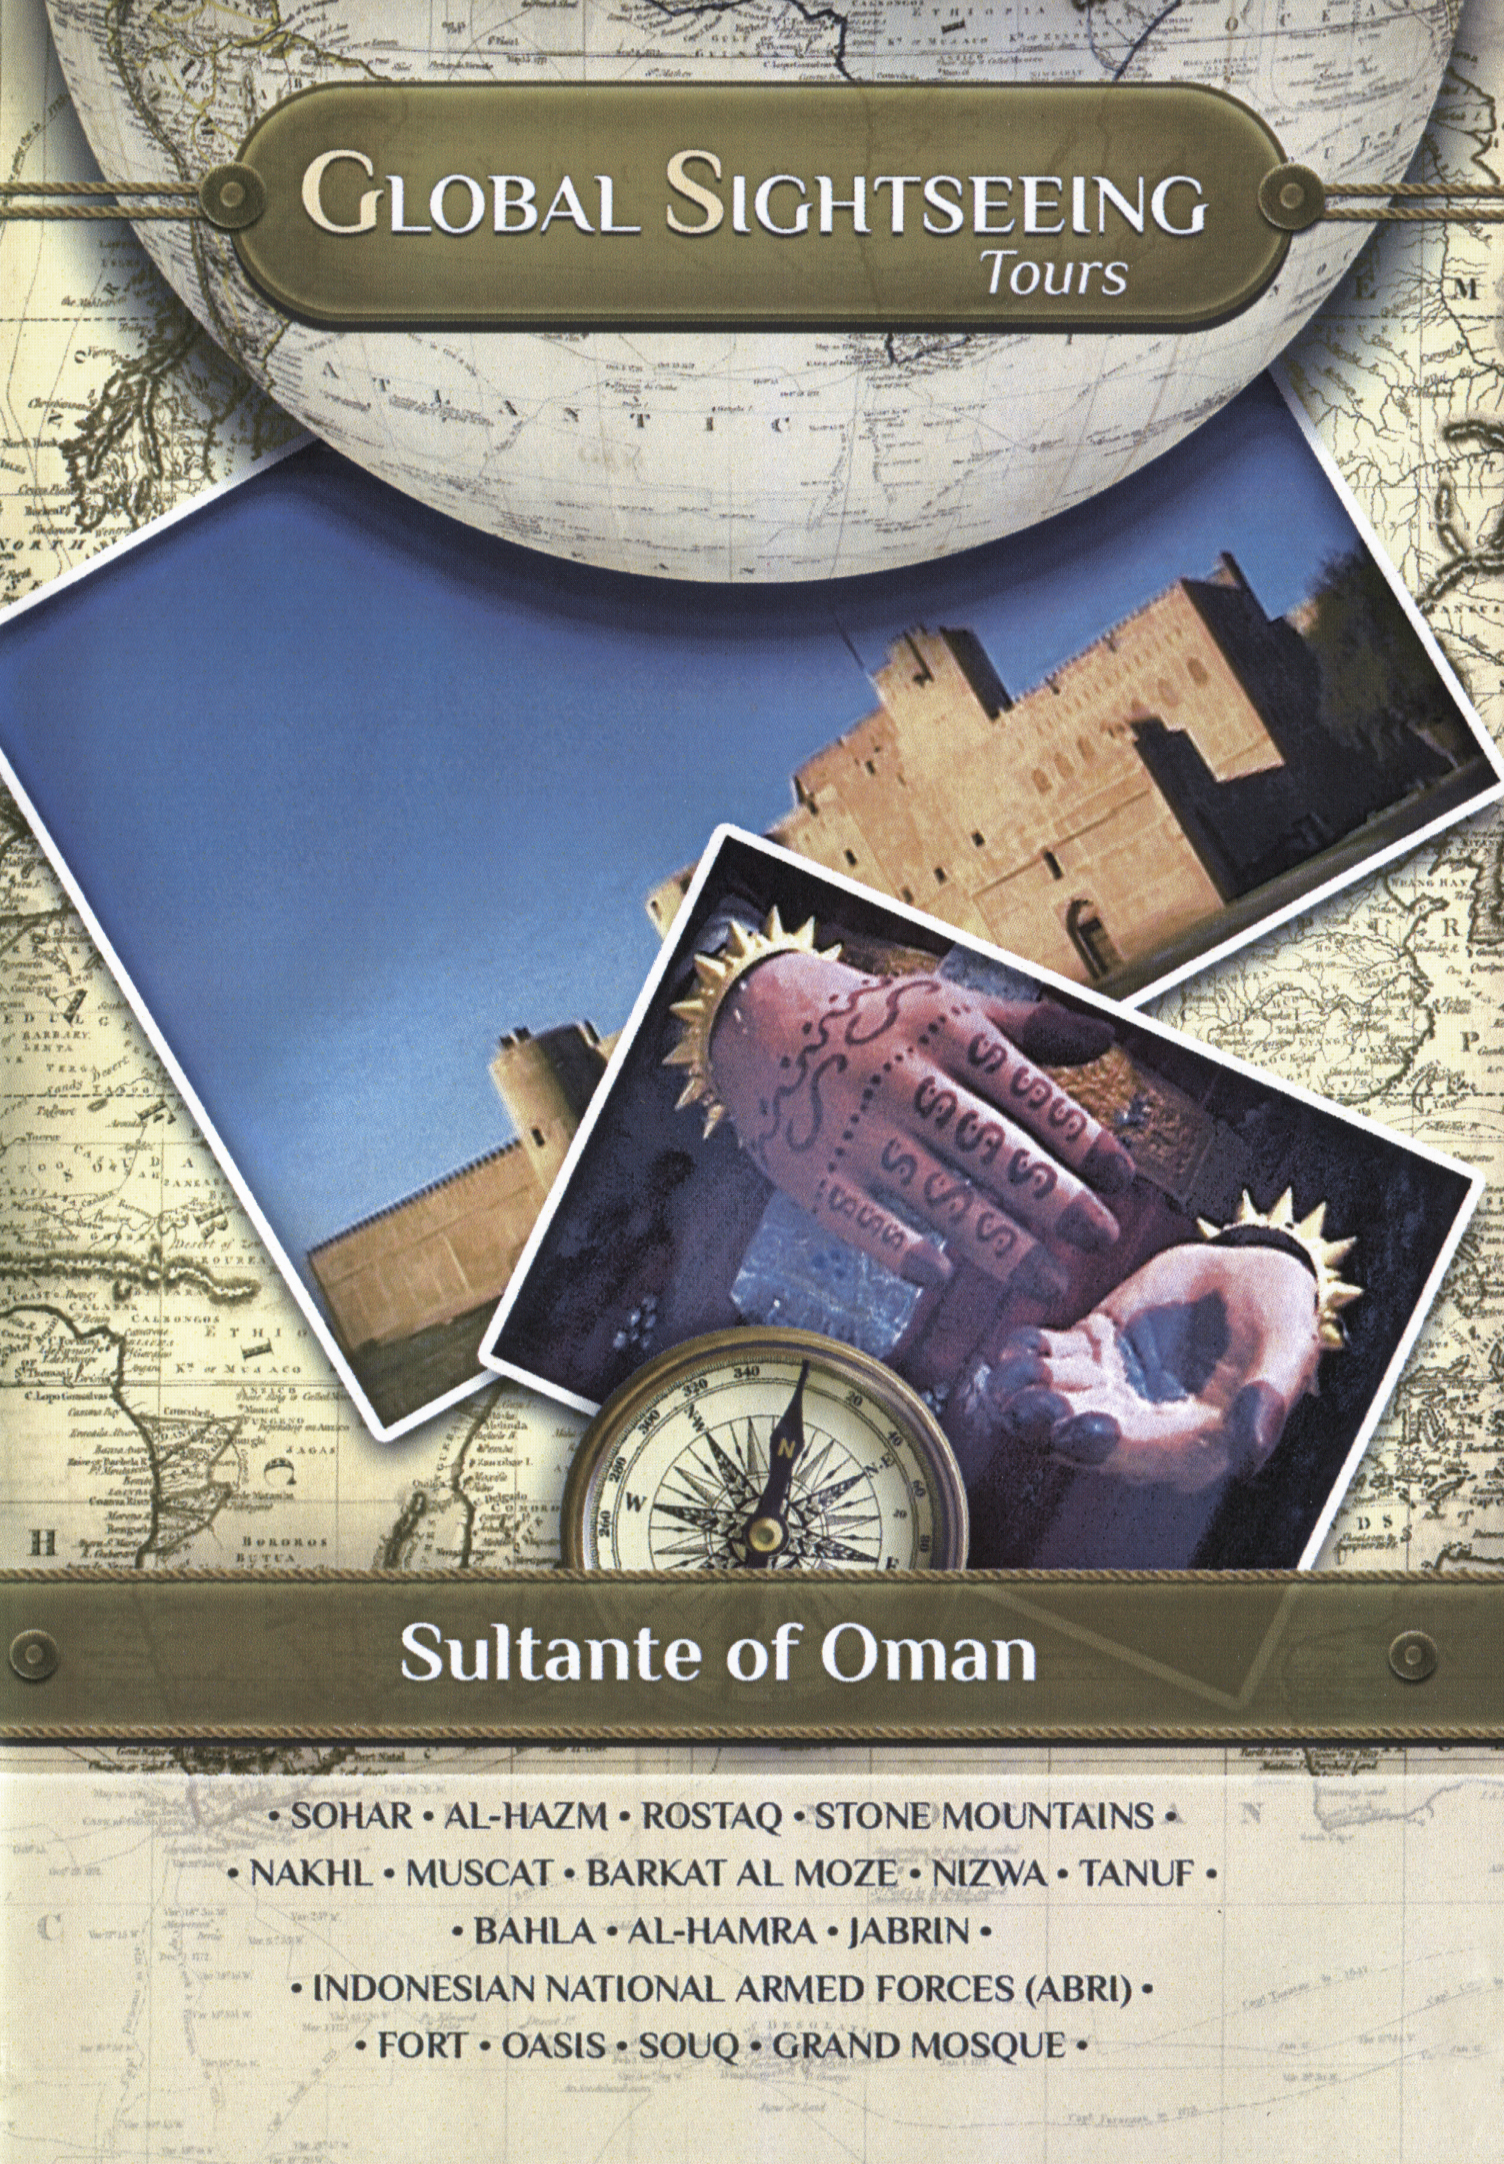 Global Sightseeing Tours: Sultante of Oman